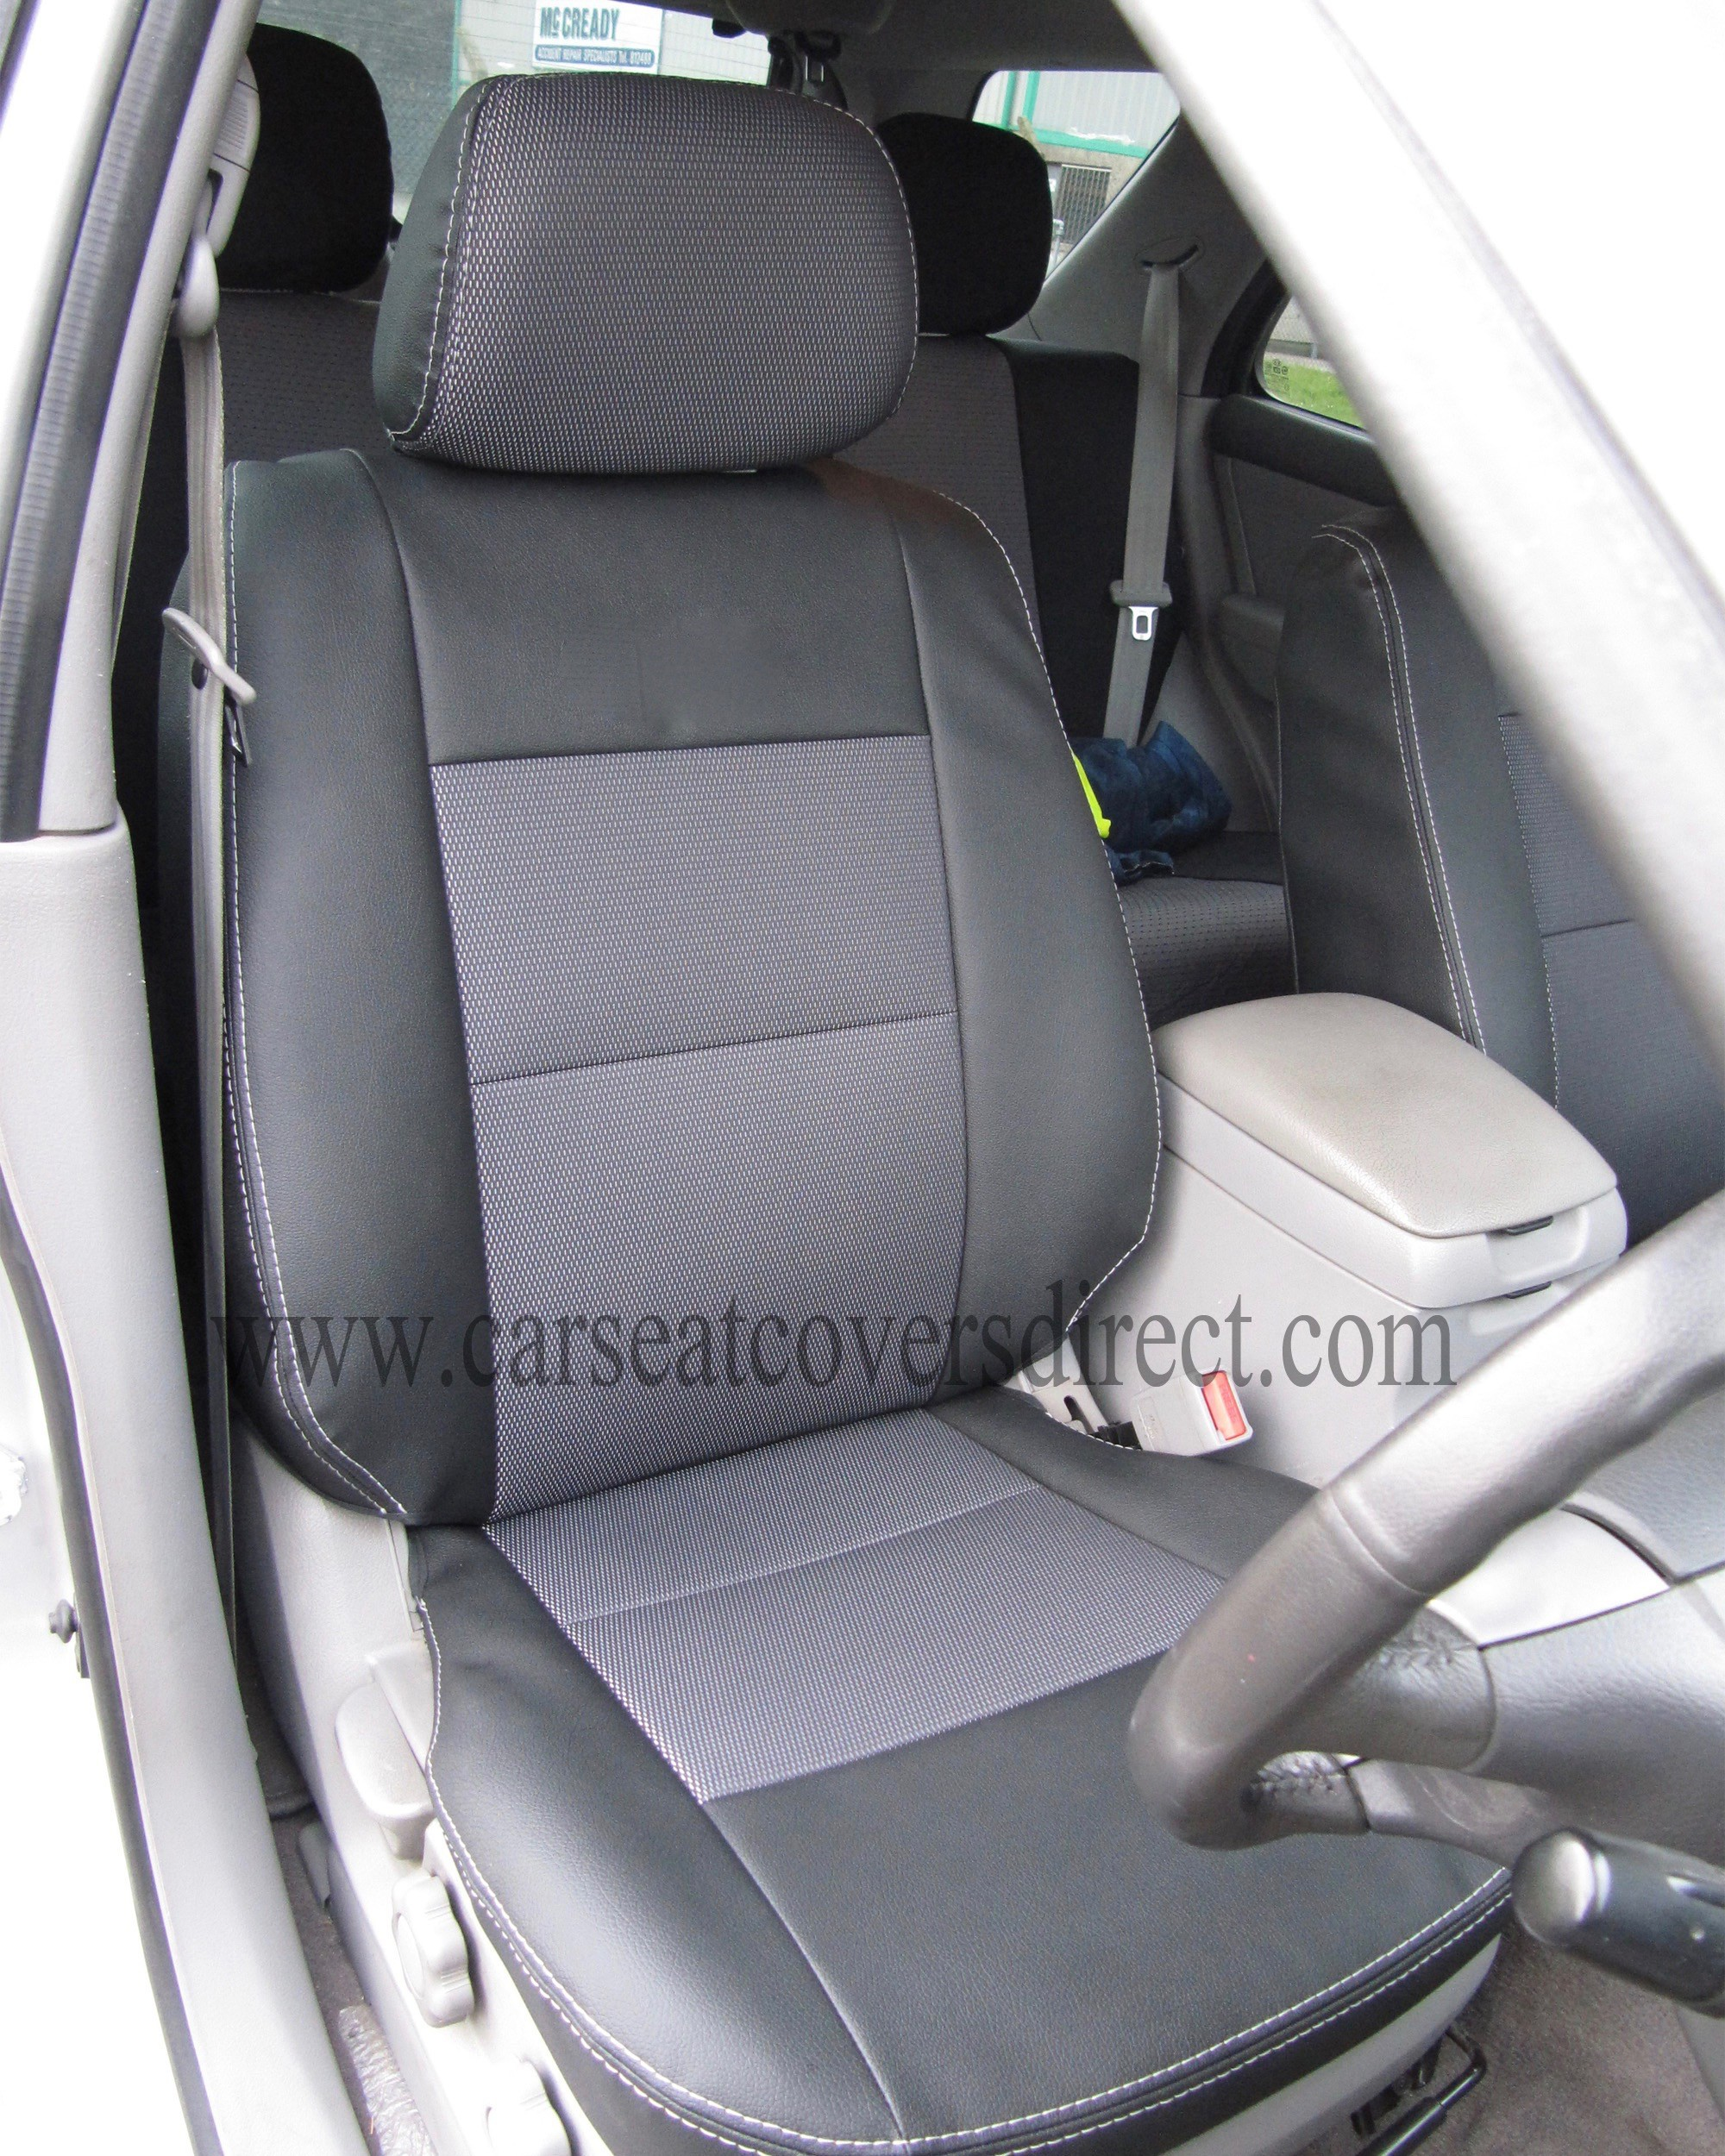 kia sorento seat covers car seat covers direct tailored to your choice. Black Bedroom Furniture Sets. Home Design Ideas